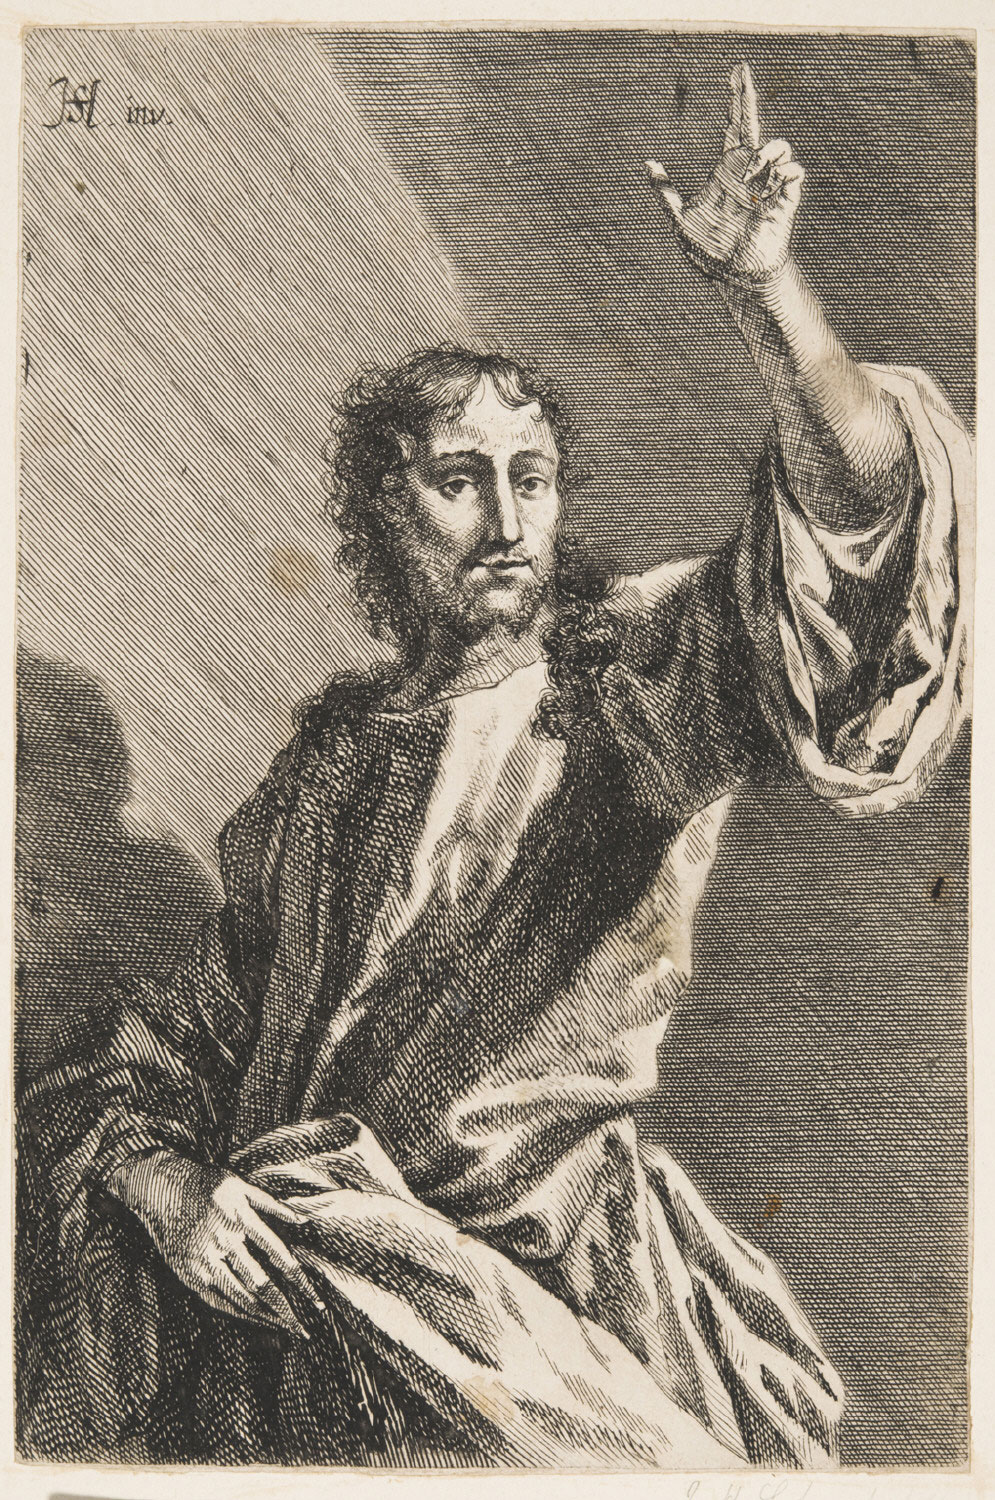 Christ Blessing,   Late 17th - early 18th century, Gabriel Ehinger, German, from the  Philadelphia Museum of Art